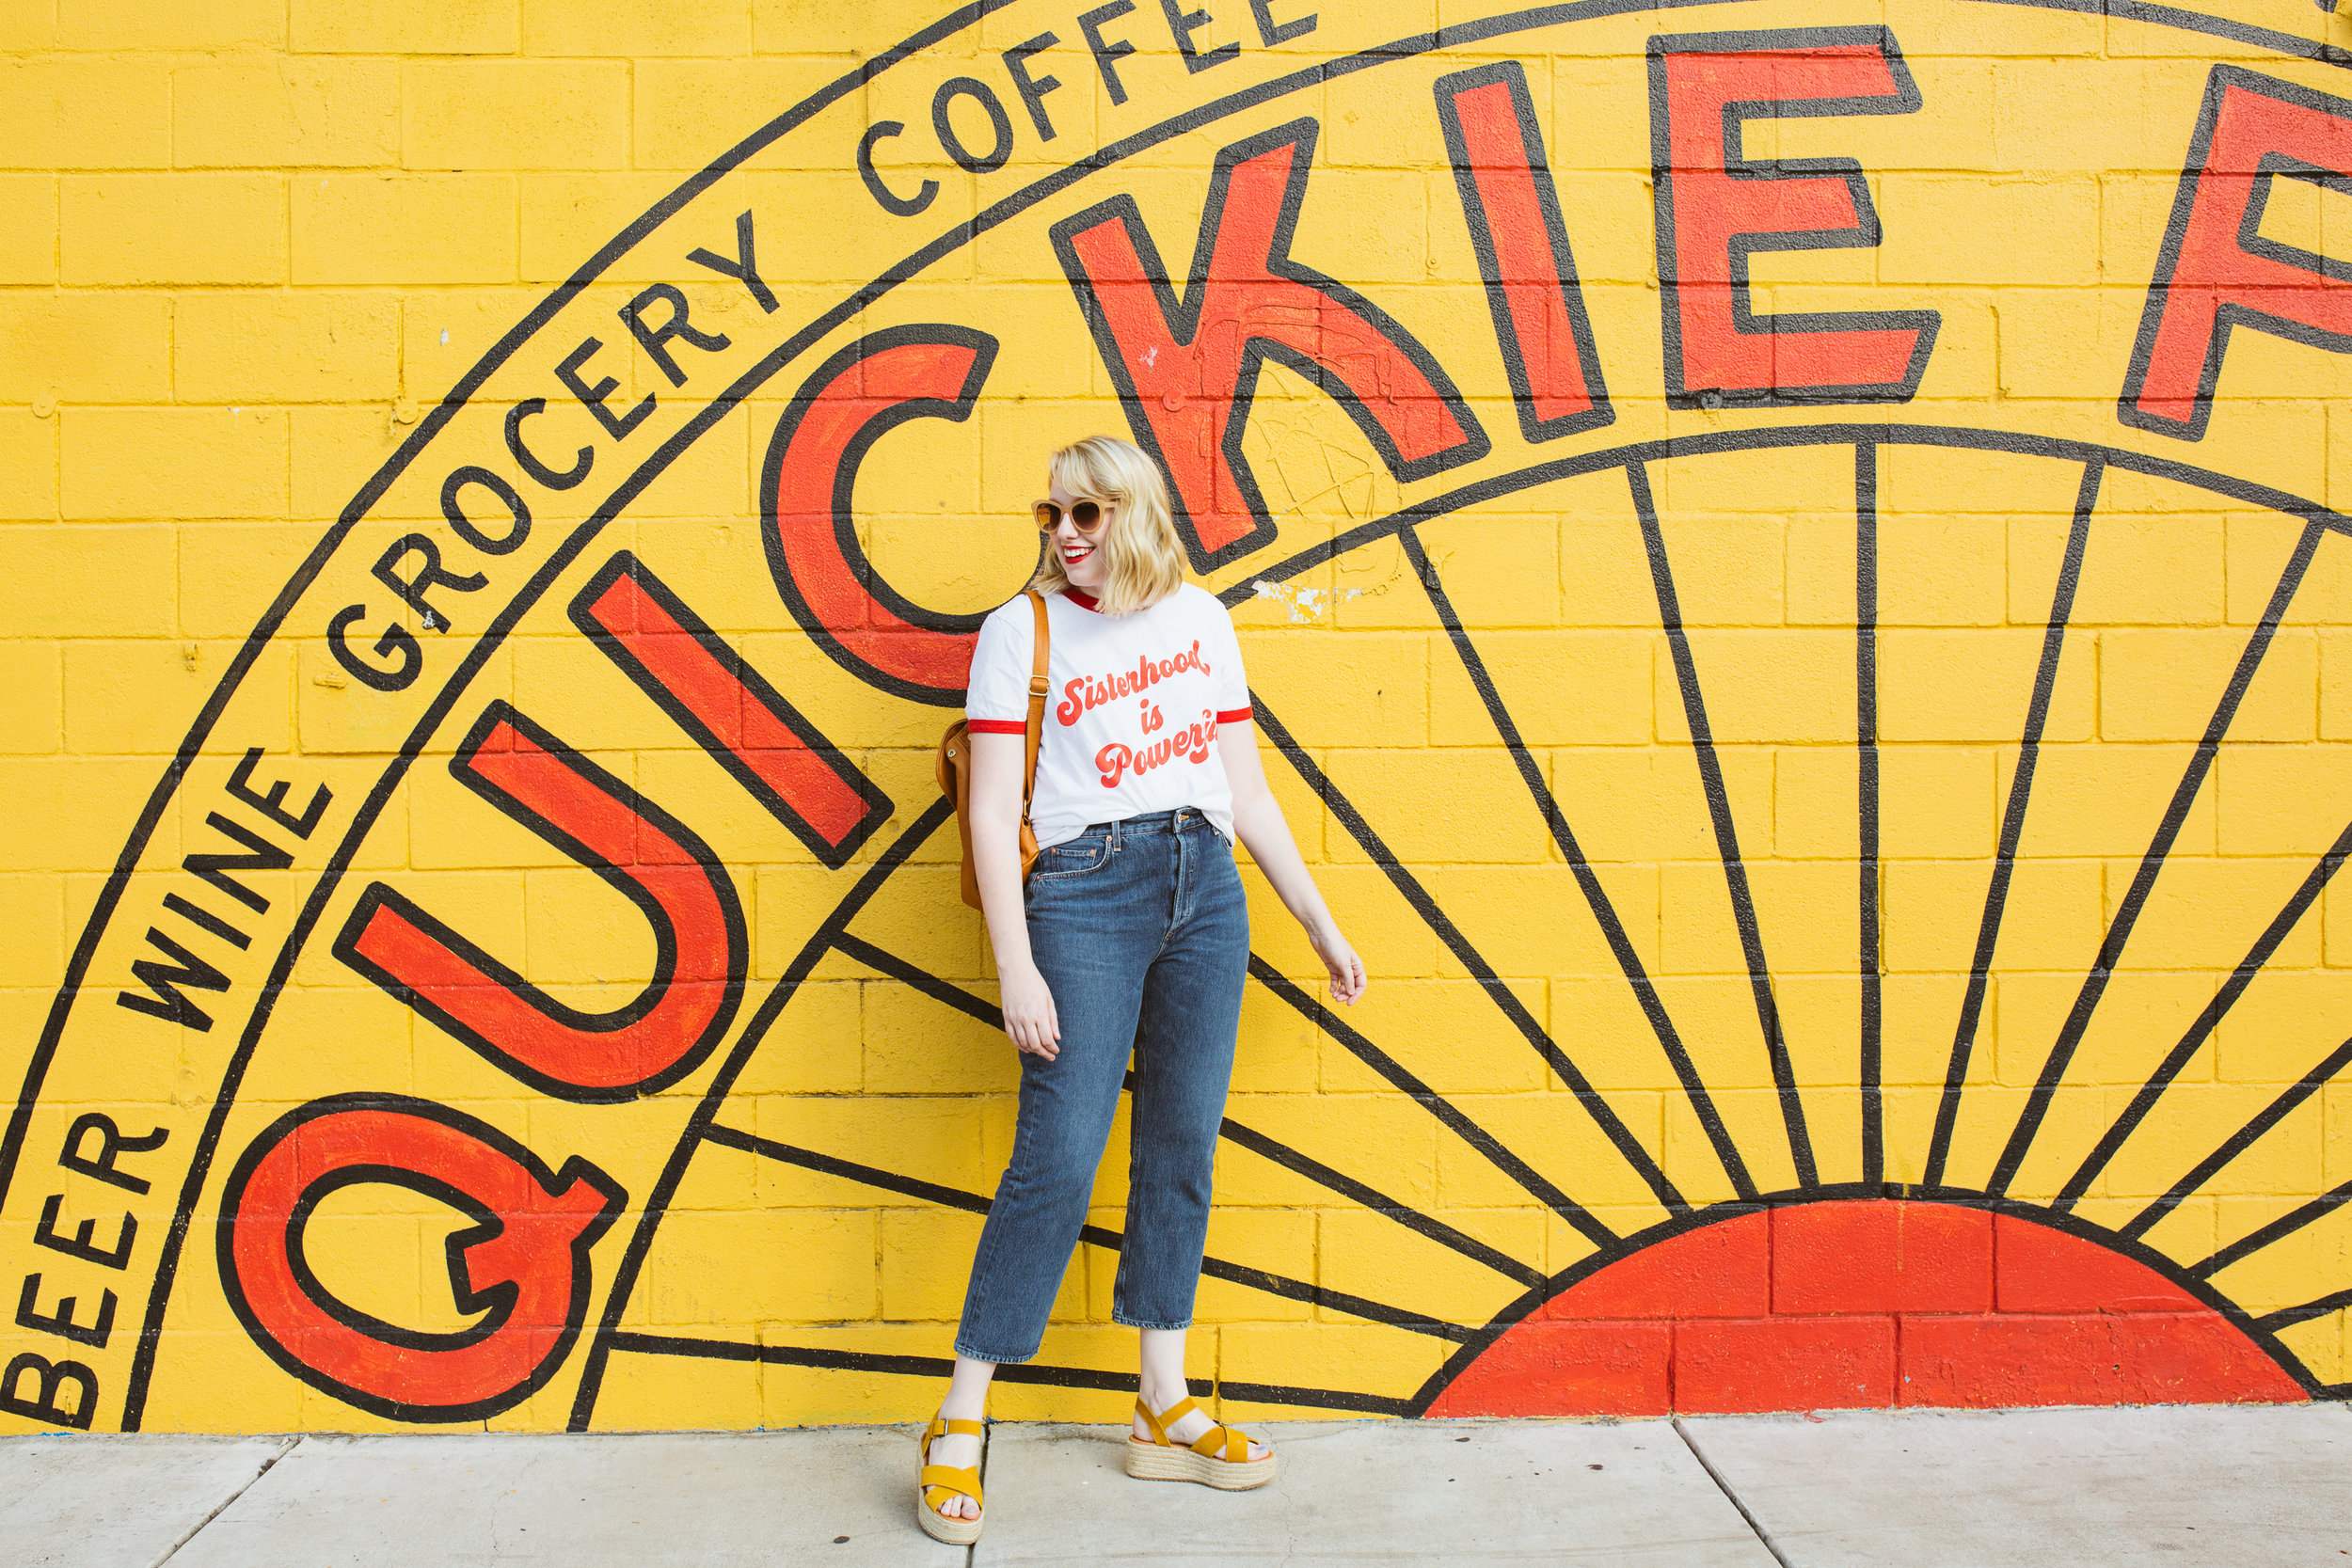 MaggieGentry interviews Nicole Seligman of Writes Like a Girl - a body positive fashion blog that inspires women to define their personal style through an introspective and uplifting approach to viewing their wardrobe.